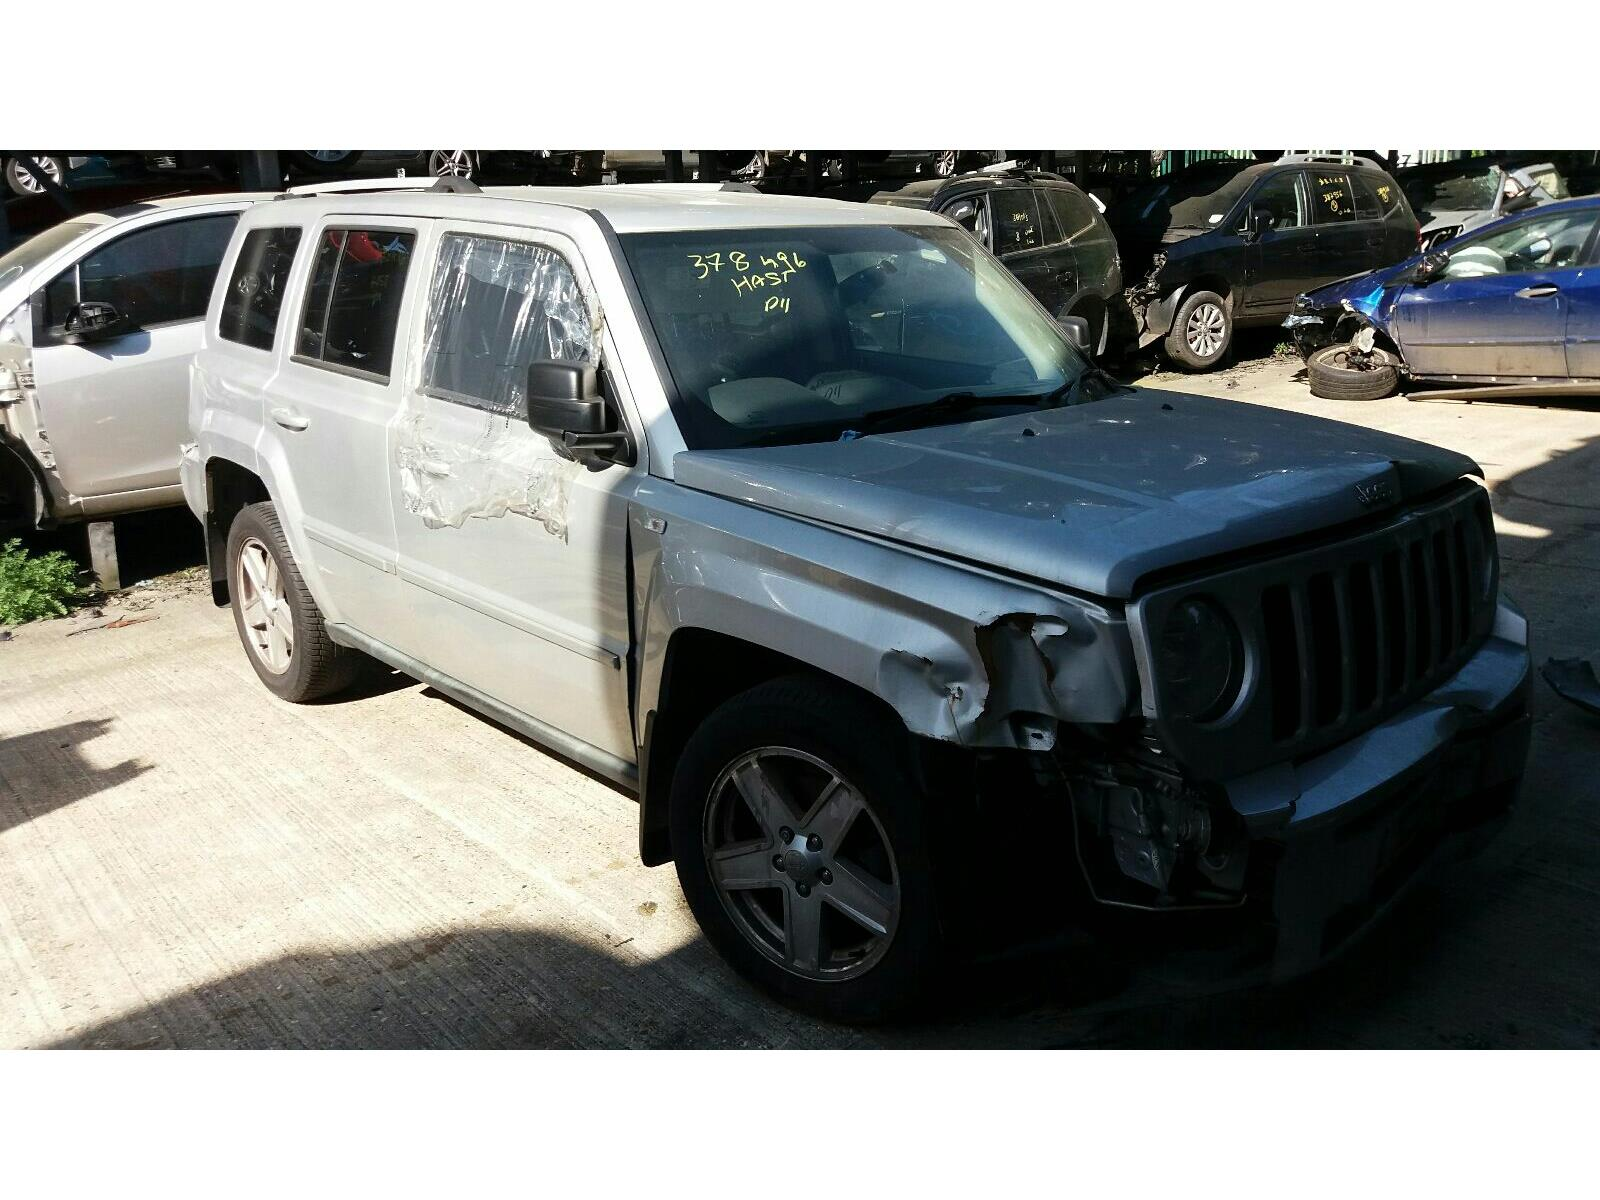 Jeep Patriot 2007 To 2011 Limited 5 Door 4x4 Scrap Salvage Car Fuel Filter For Sale Auction Silverlake Autoparts